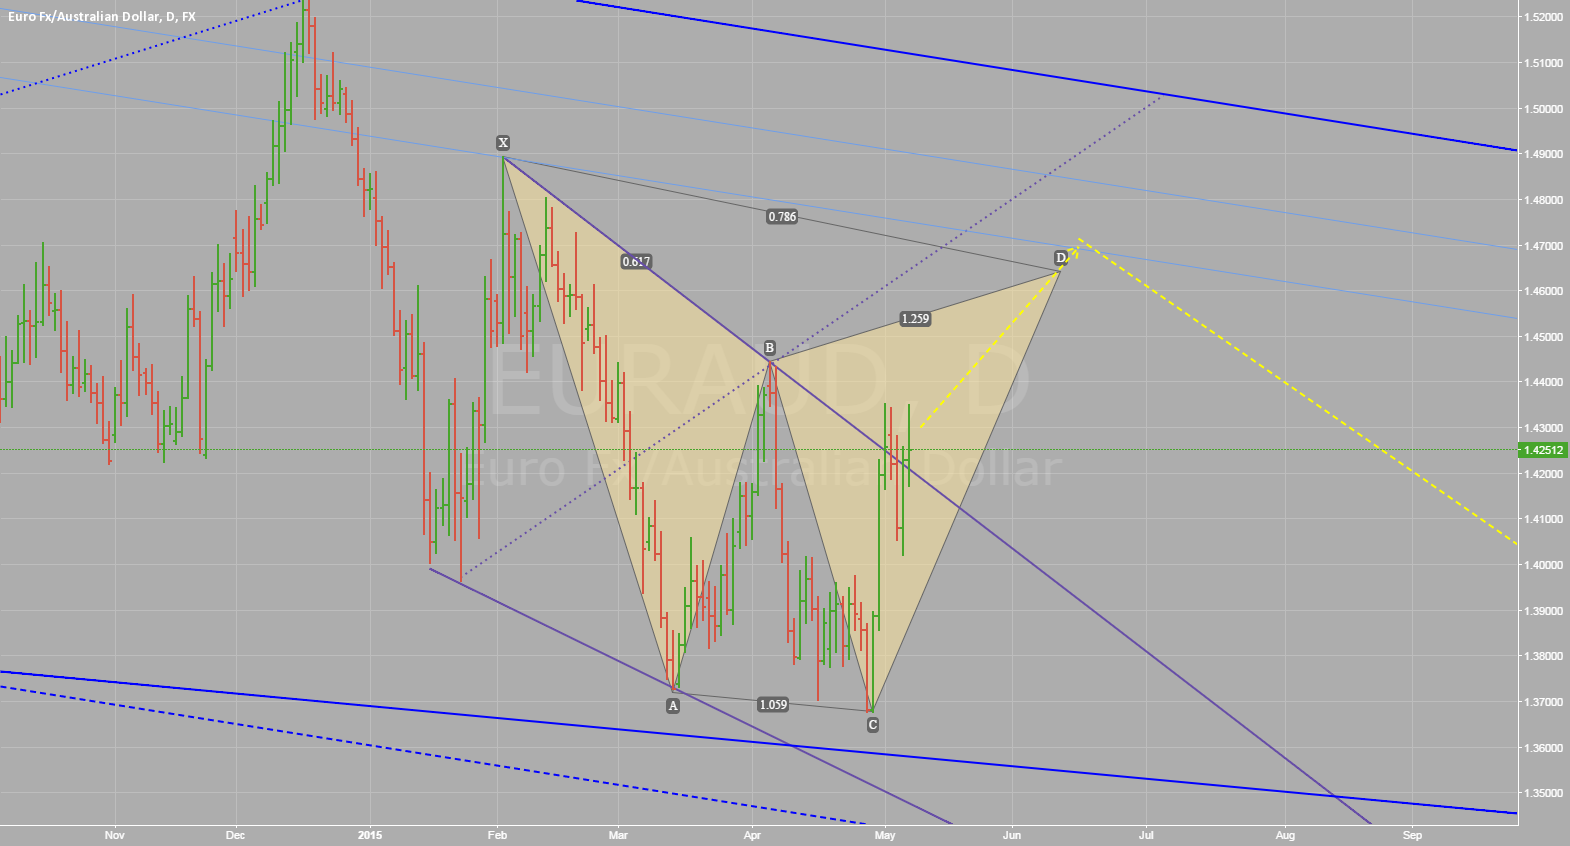 Is this a Valid Gartley?